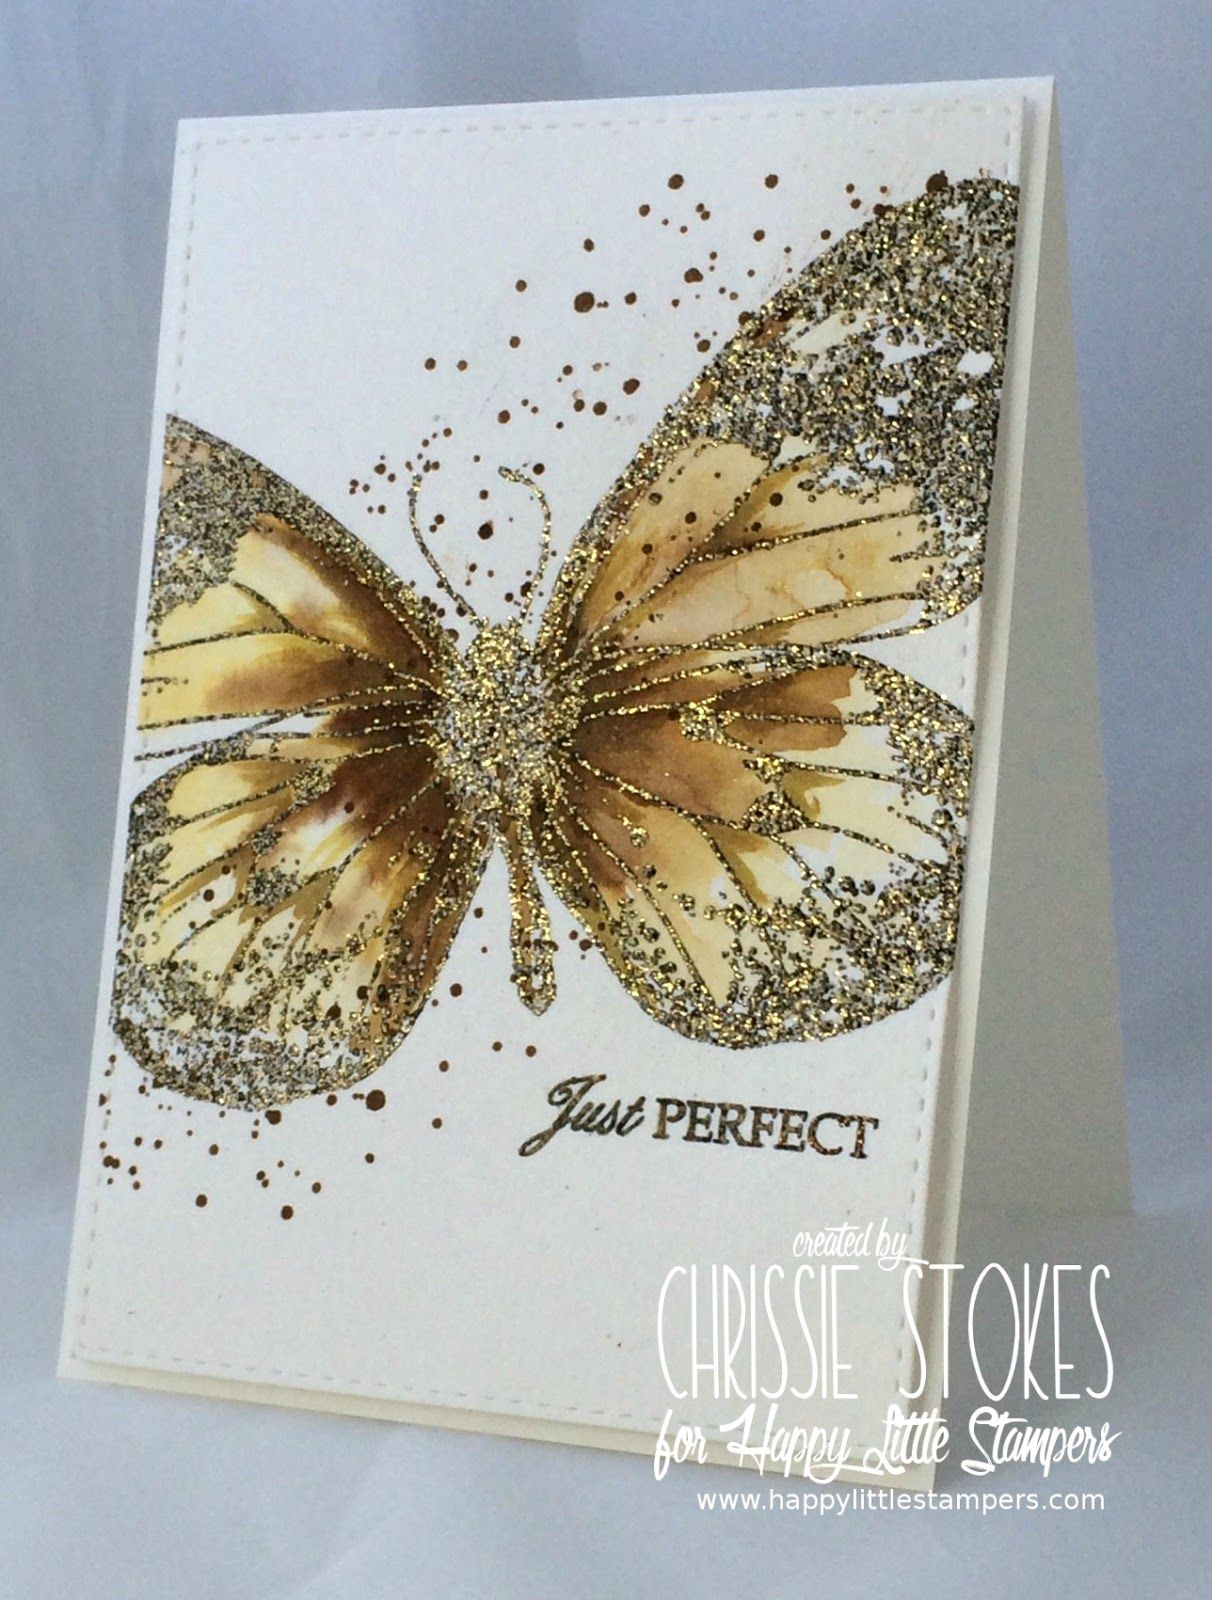 Simply One of a Kind: Happy Little Stampers July Challenge!